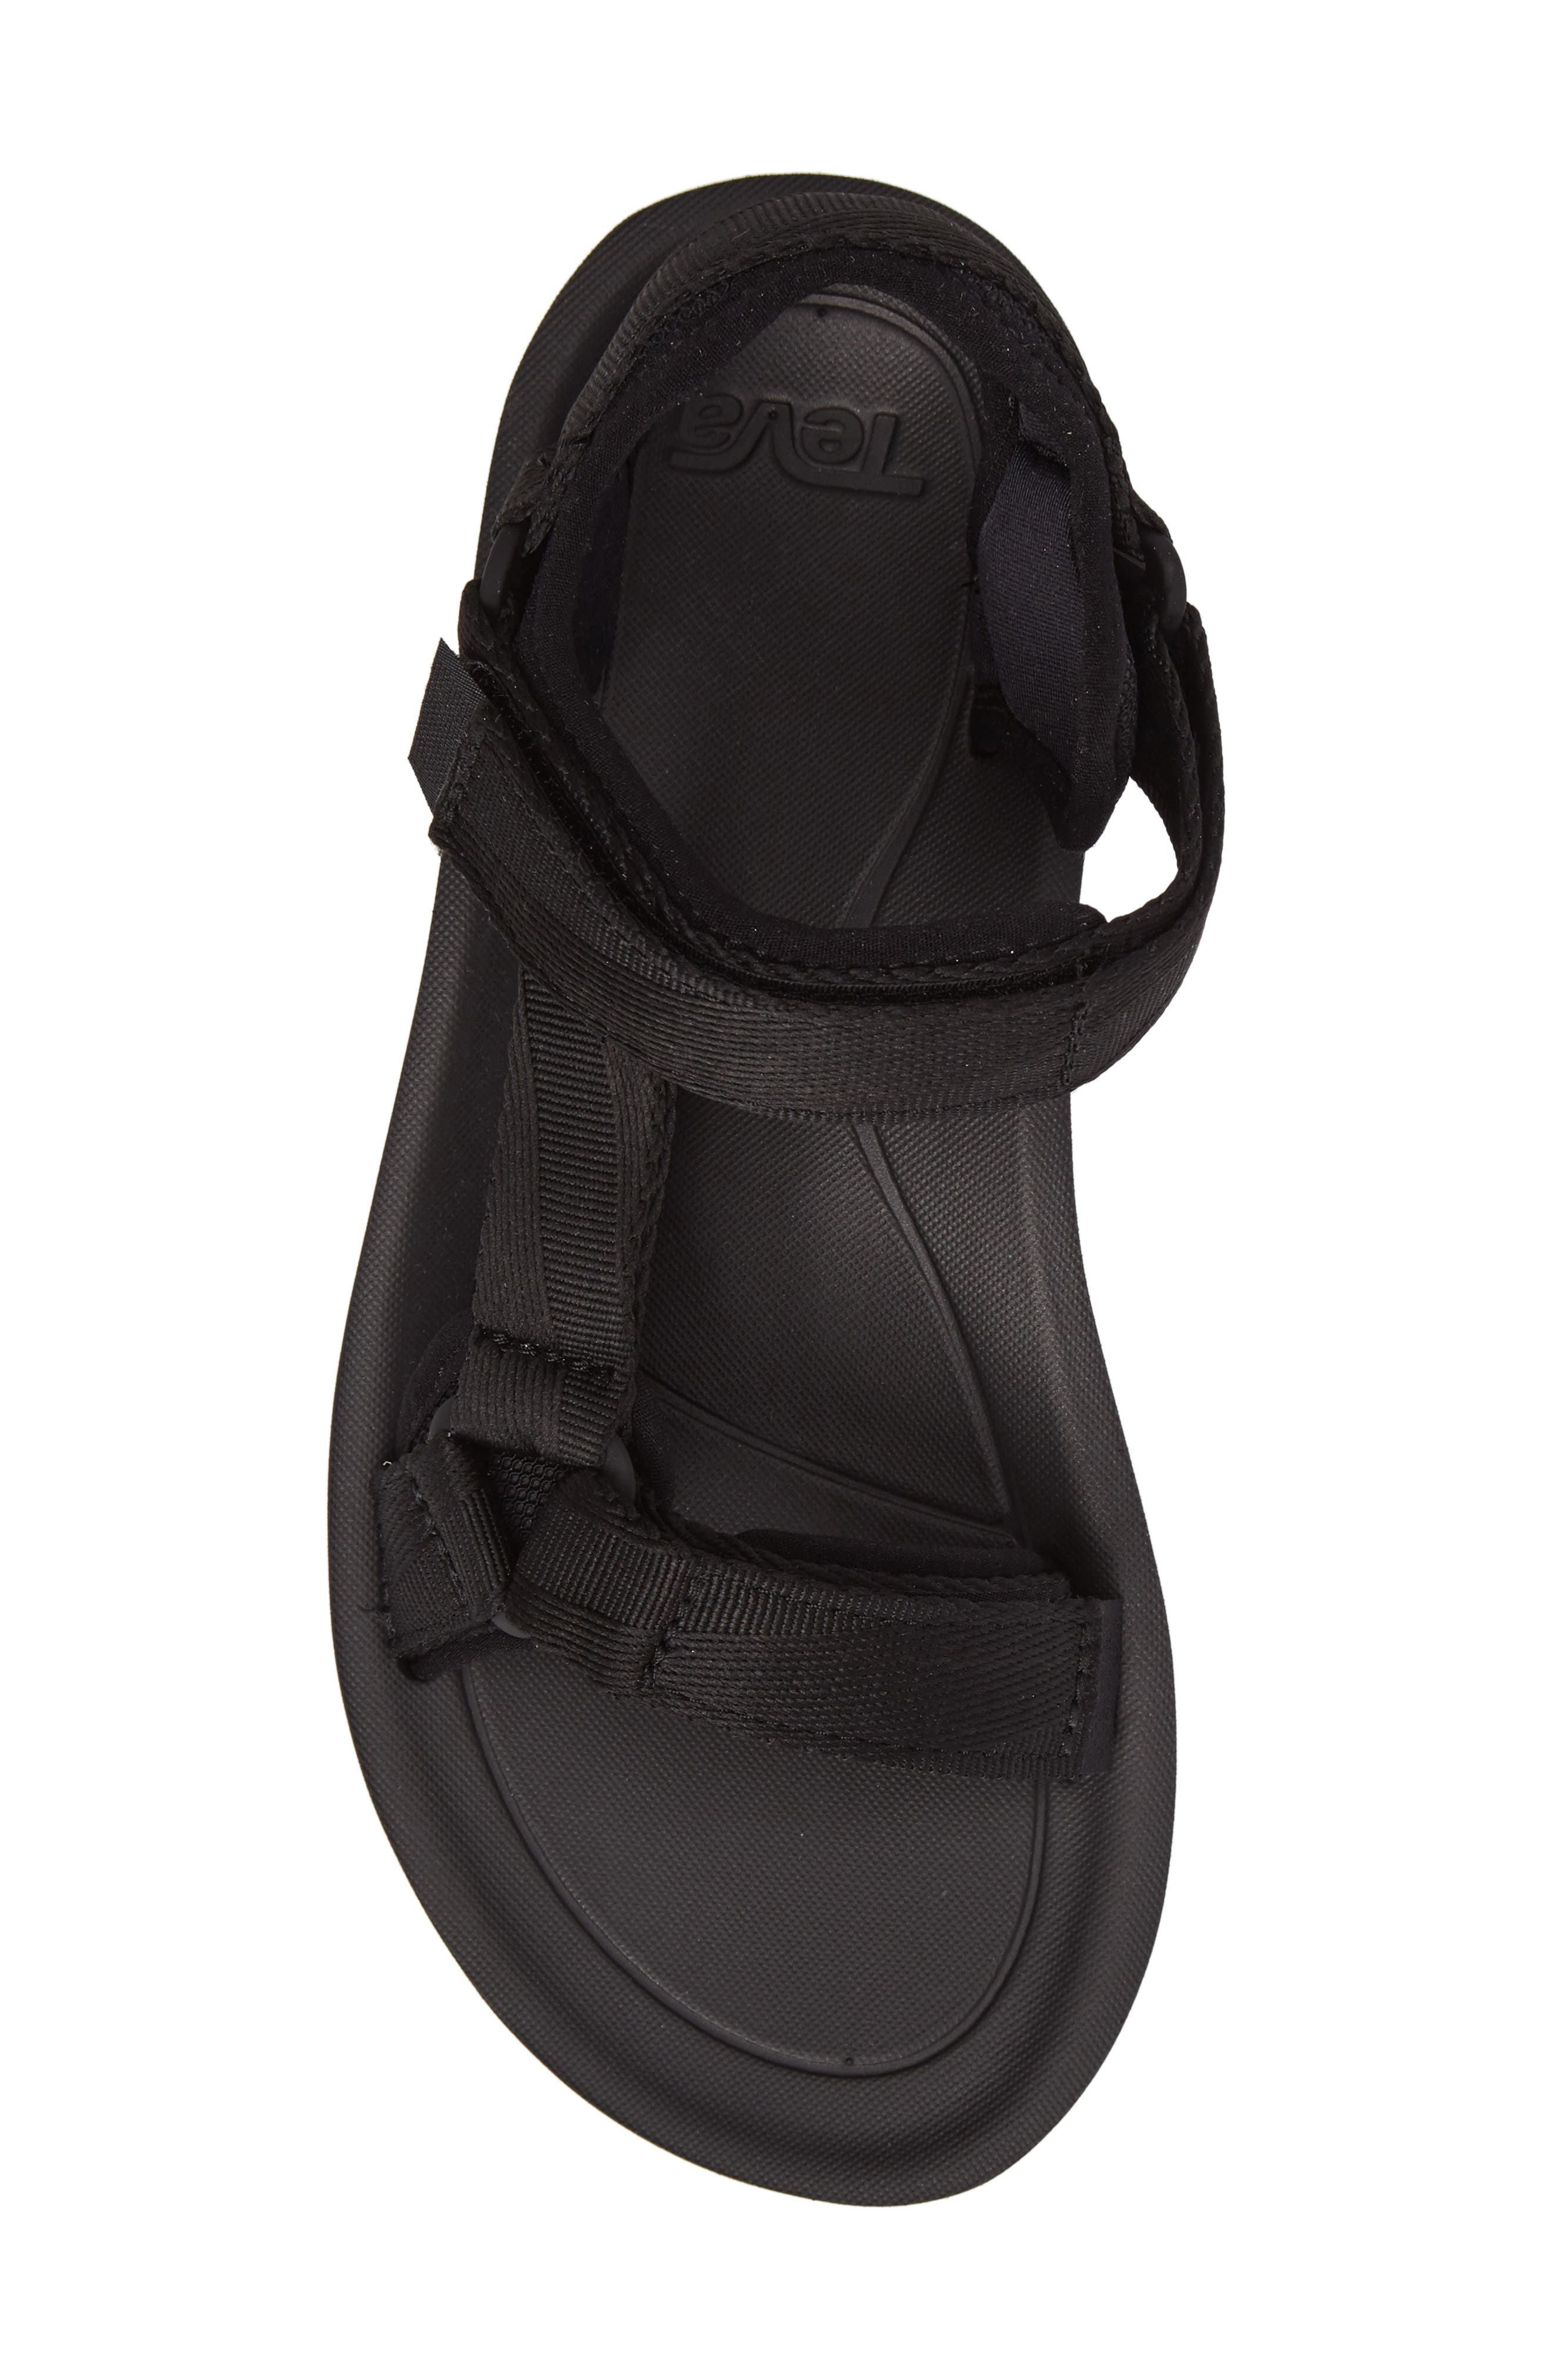 Original Universal Premier Sandal,                             Alternate thumbnail 5, color,                             BLACK FABRIC